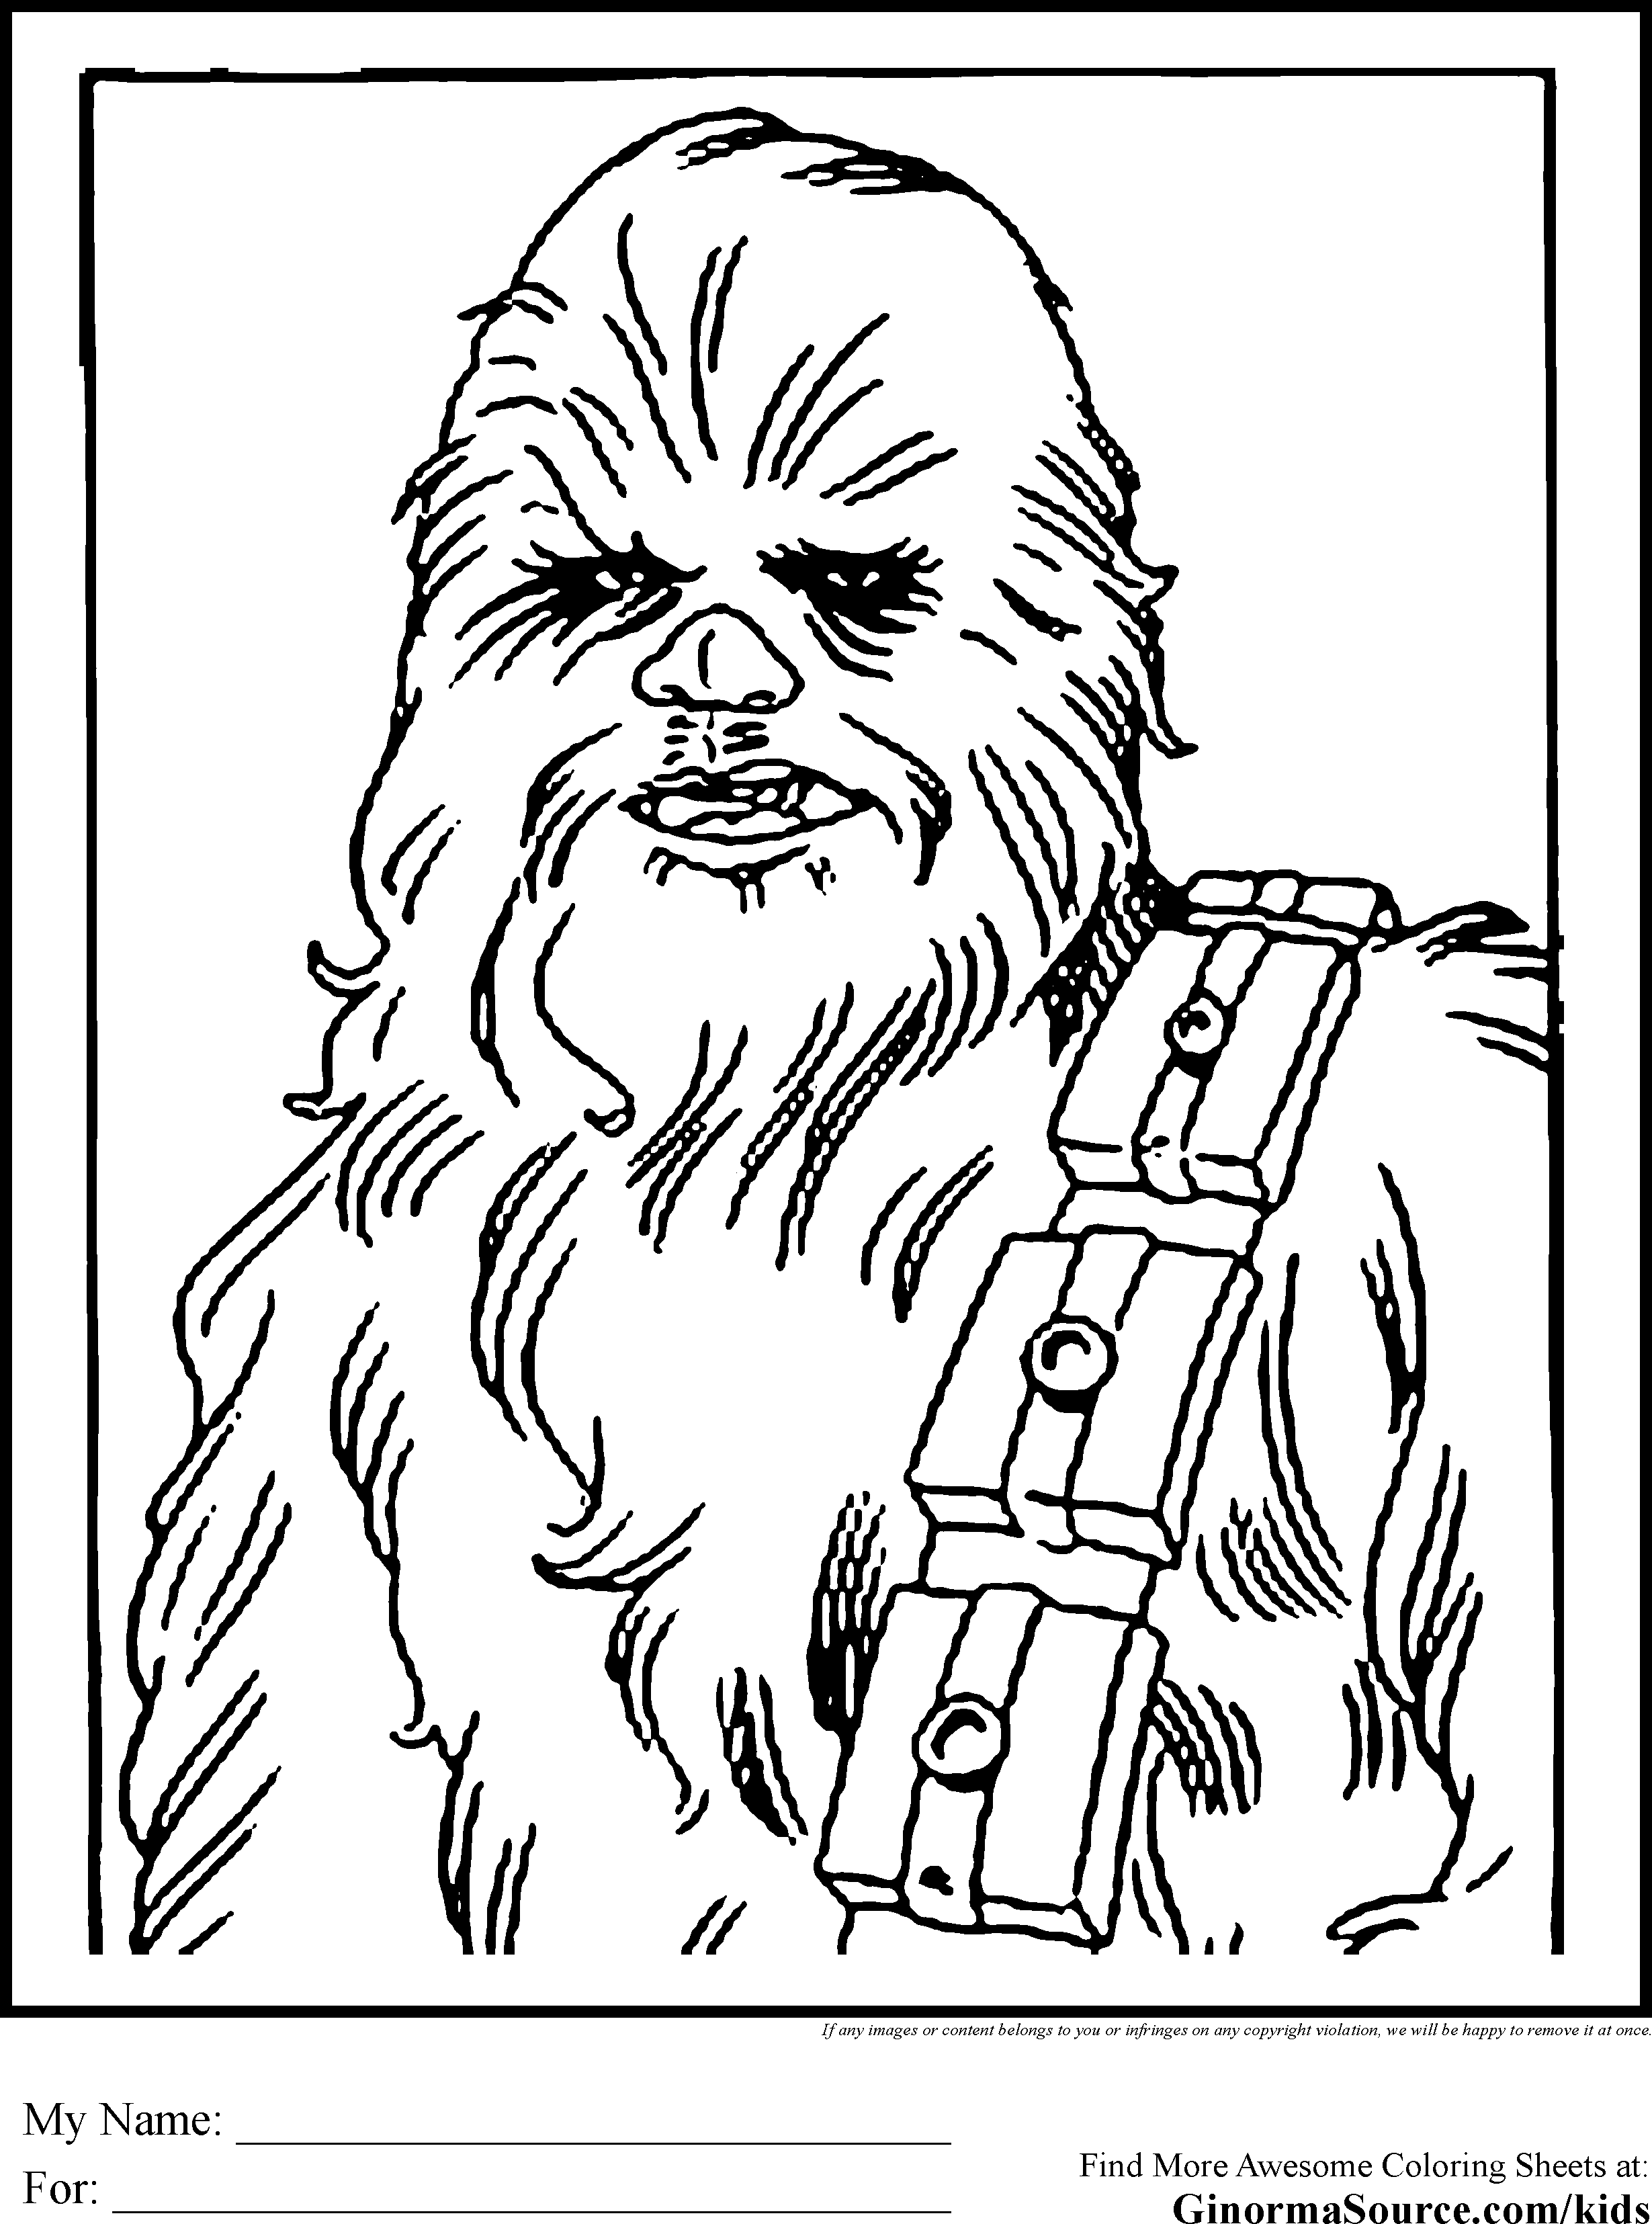 chewbacca coloring pages Star Wars Colouring Pages Chewbacca Wookie | Coloring pages  chewbacca coloring pages